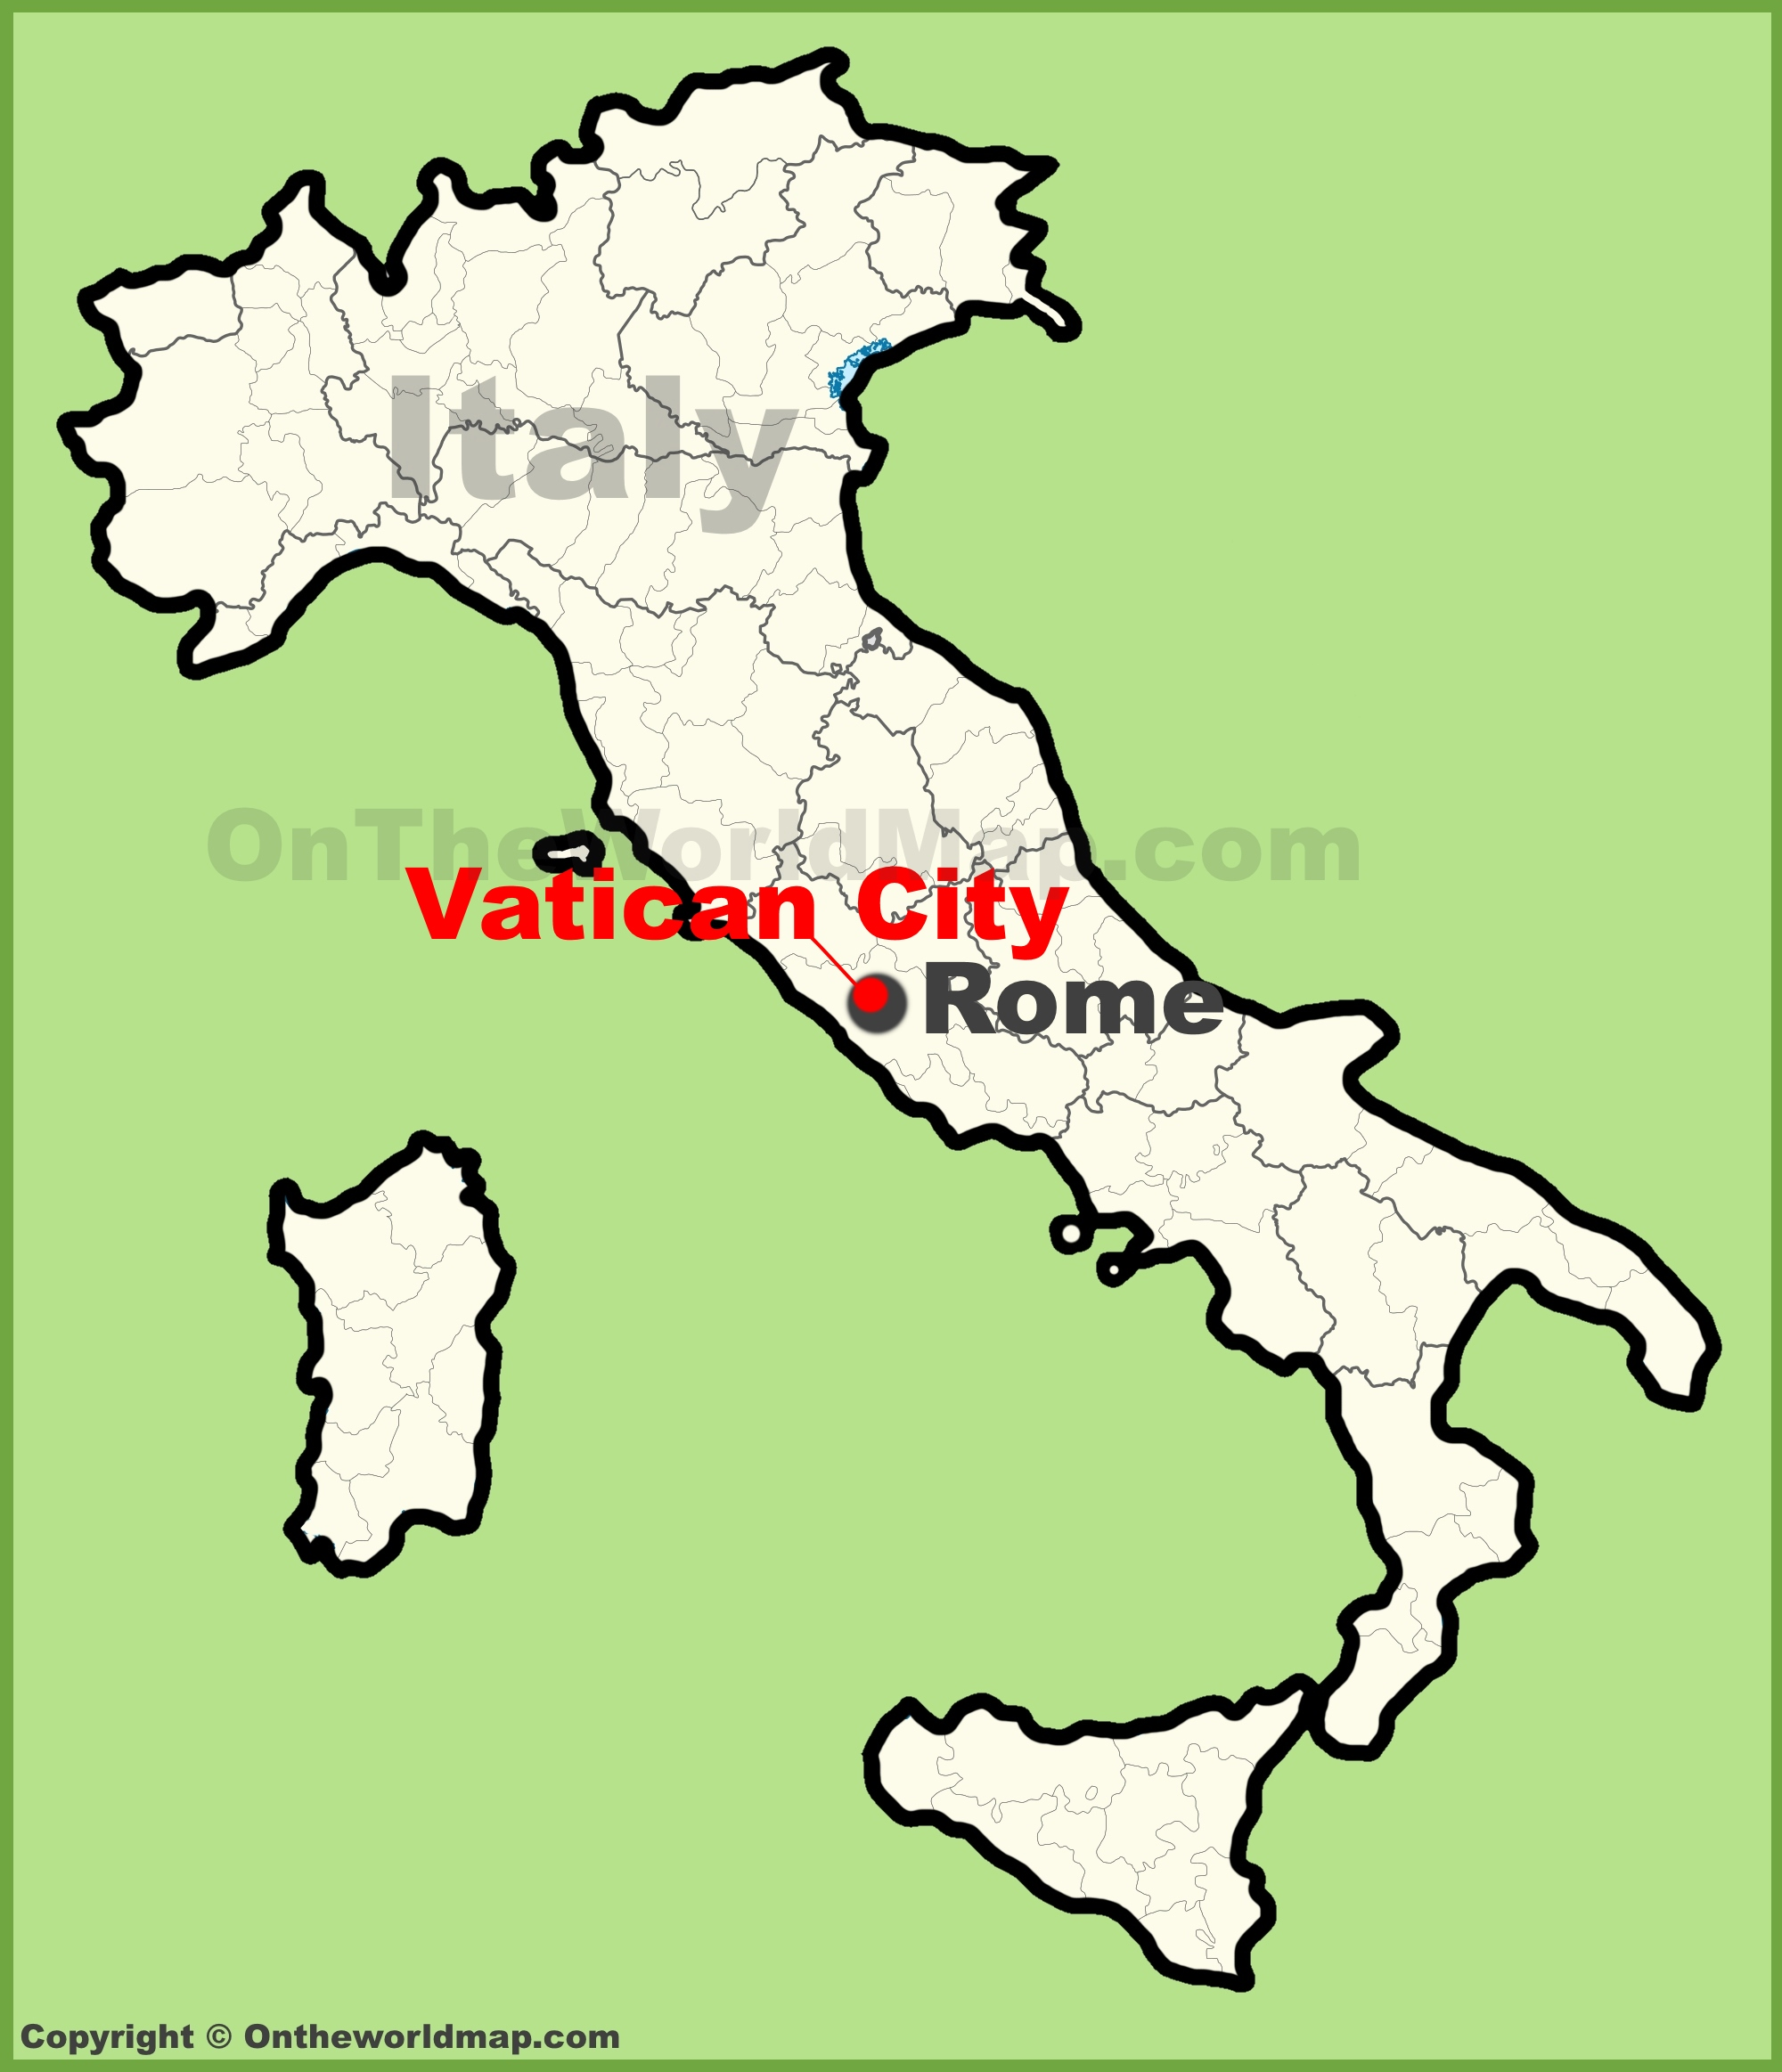 Vatican City location on the map of Italy